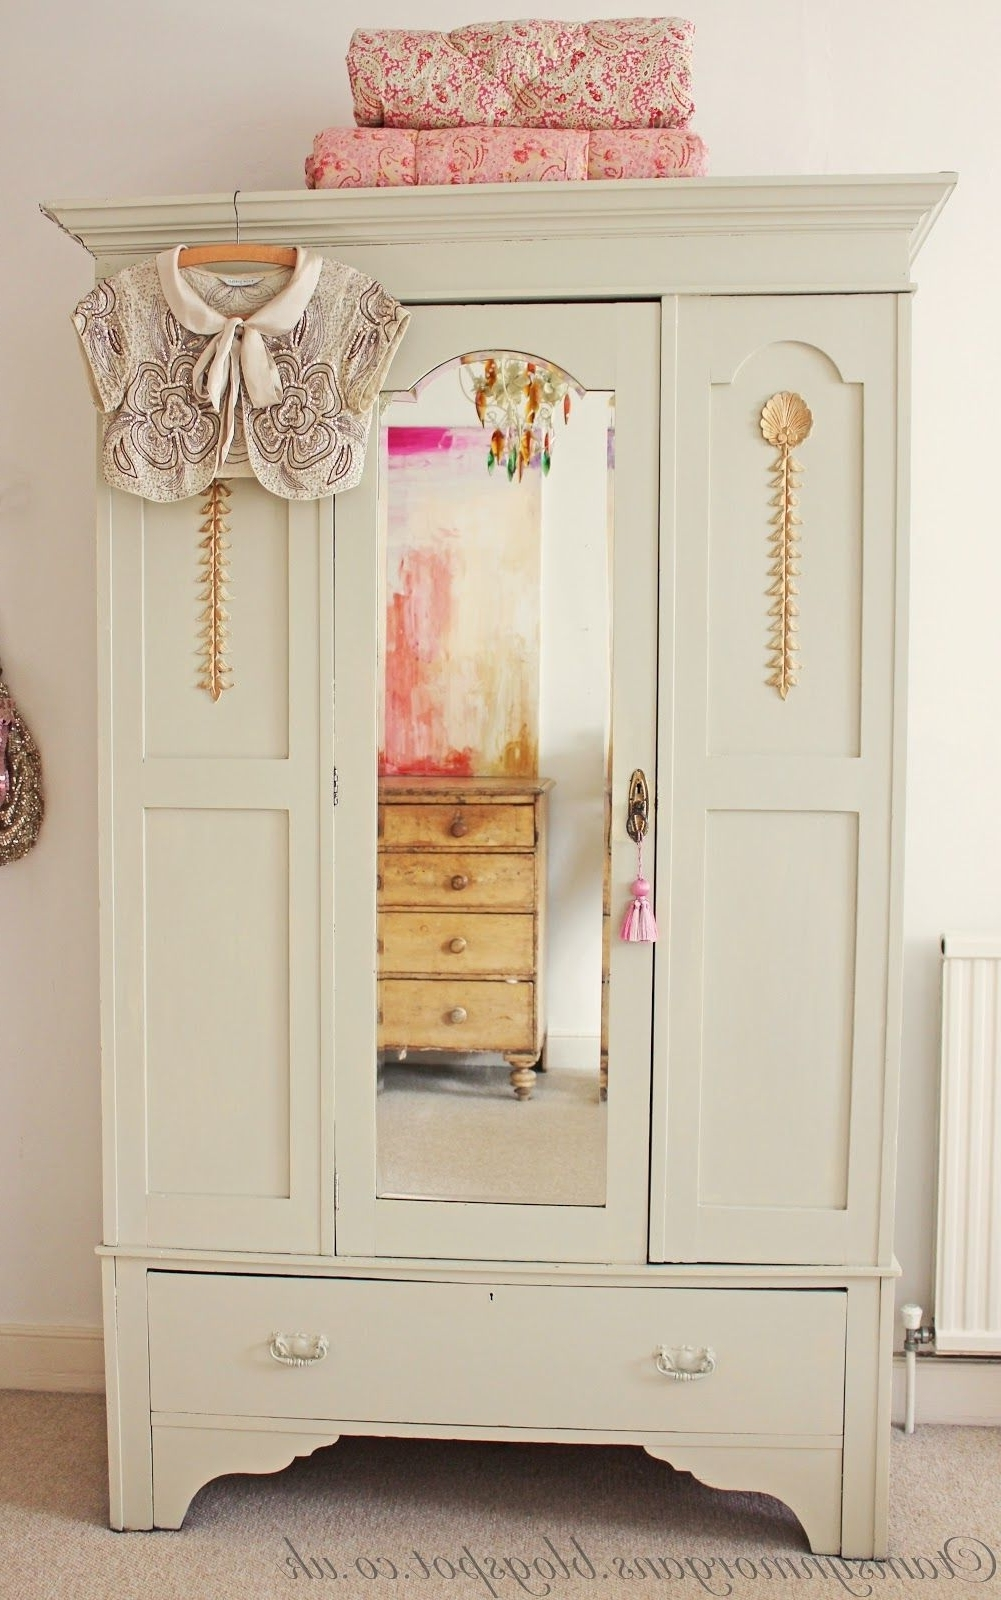 Vintage Shabby Chic Wardrobes Throughout 2017 The Villa On Mount Pleasant, Vintage Shabby Chic Wardrobe (View 13 of 15)